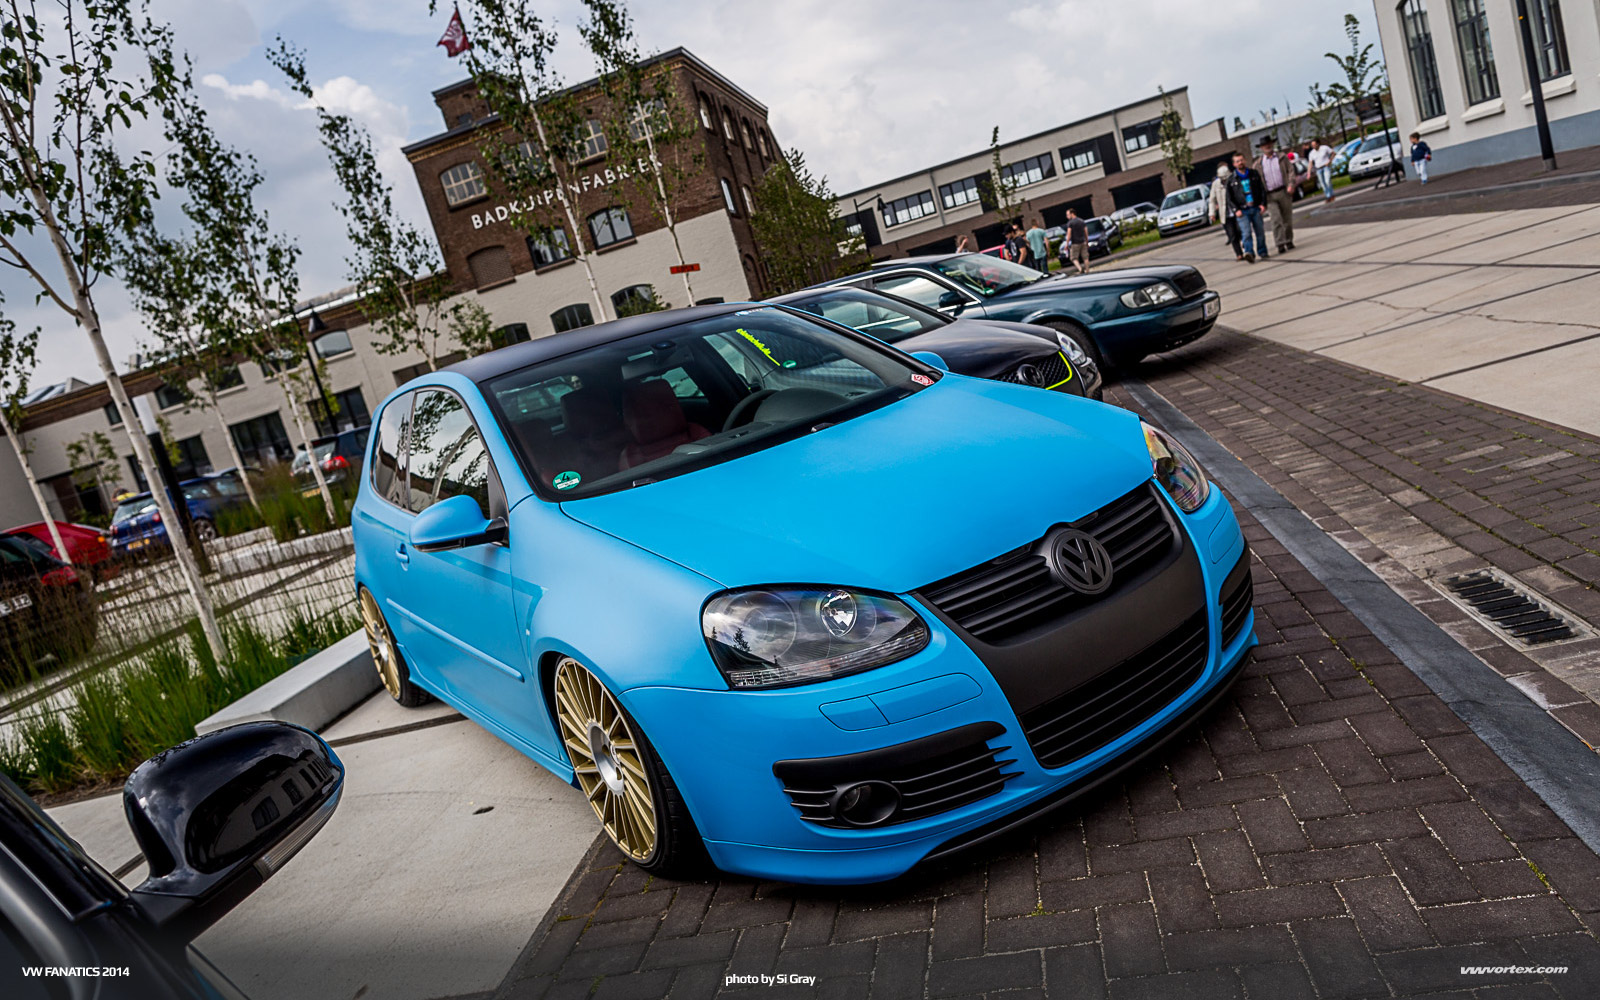 VWFanatics-2014-Si-Gray-444